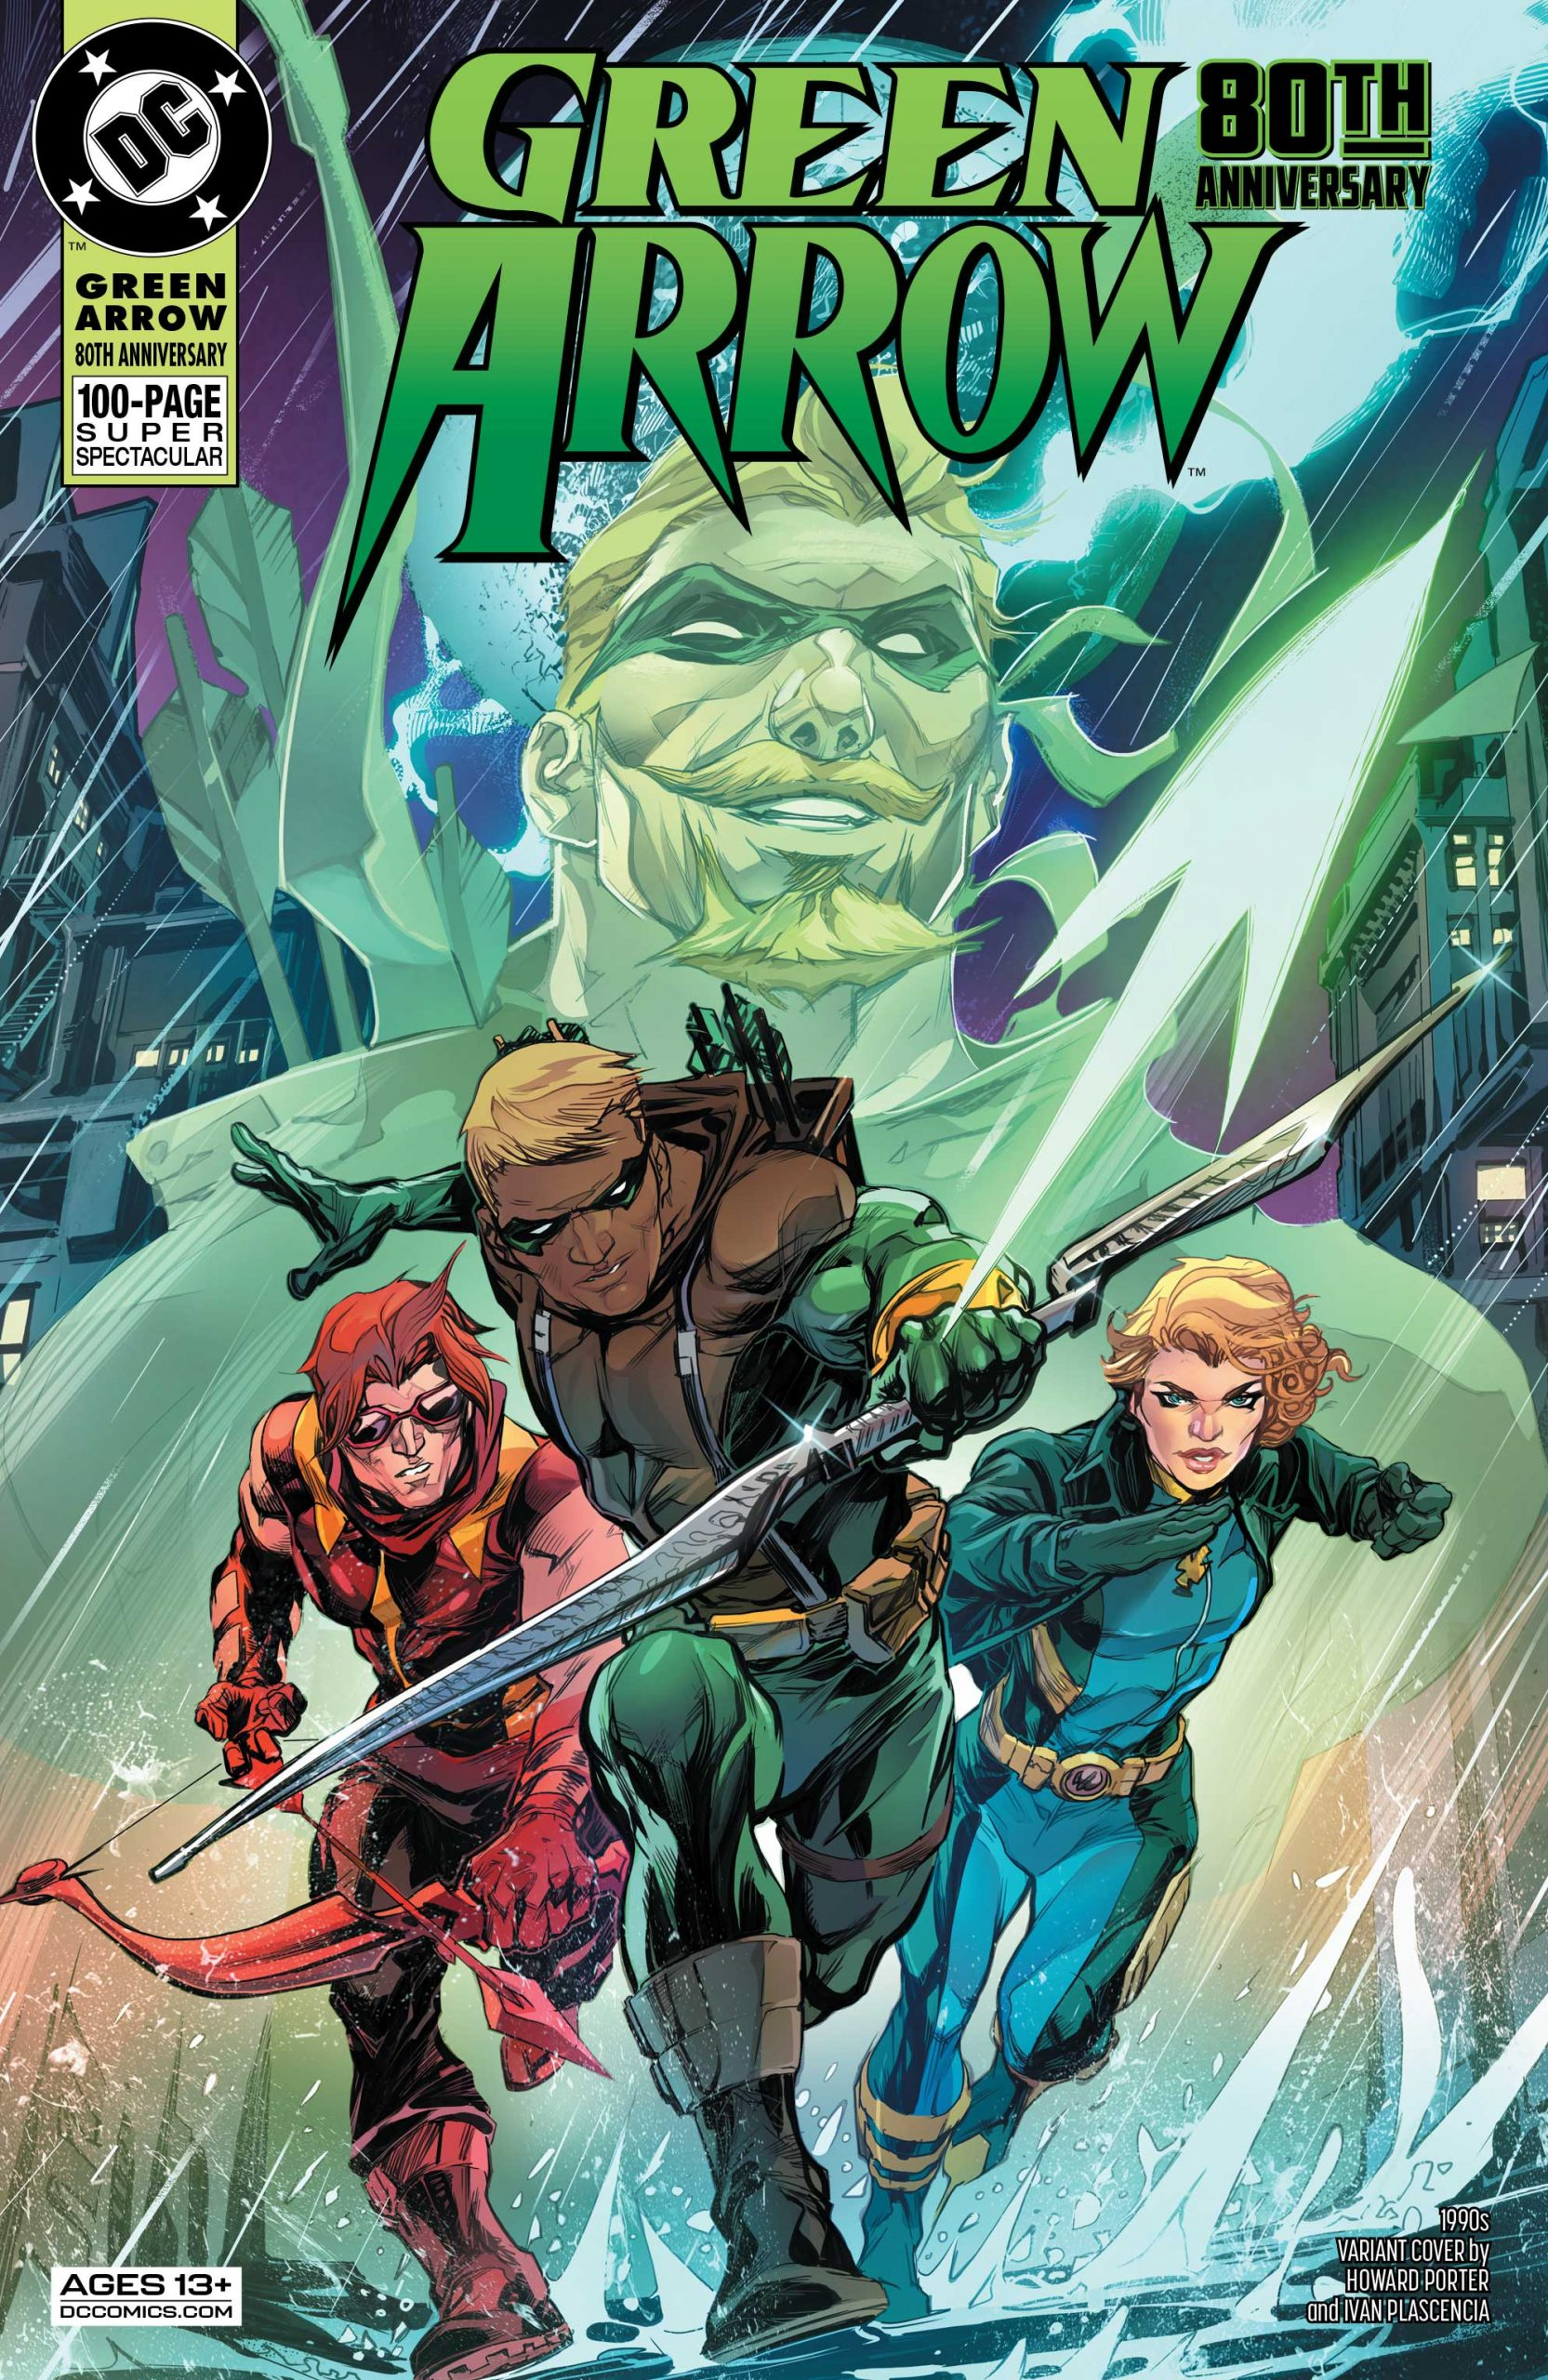 Green-Arrow-80th-Anniversary-100-Page-Super-Spectacular-1-7-scaled-1 Green-Arrow-80th-Anniversary-100-Page-Super-Spectacular-1-7-scaled-1